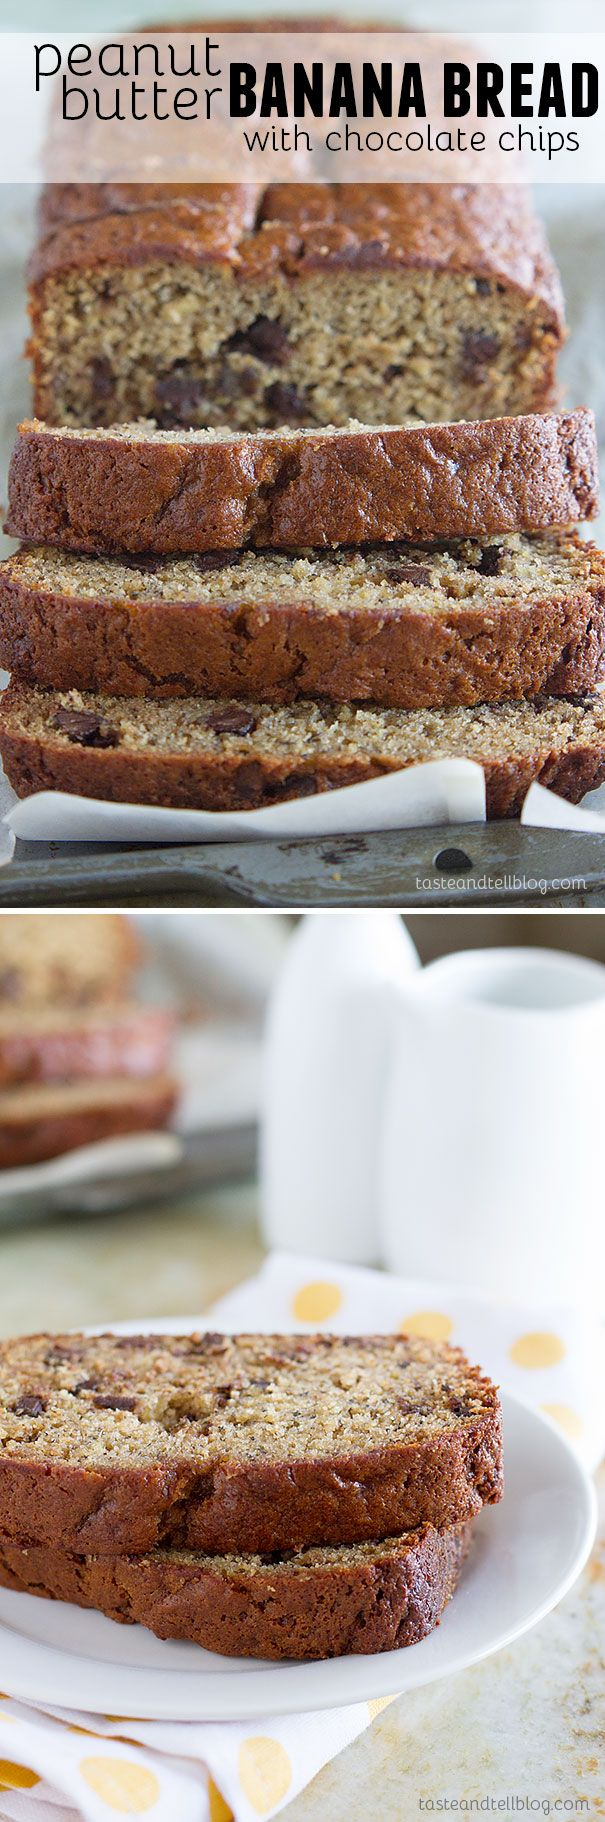 Fit for a king, this Peanut Butter Banana Bread with Chocolate Chips is a fun take on Elvis' favorite flavor combination - peanut butter and bananas.: